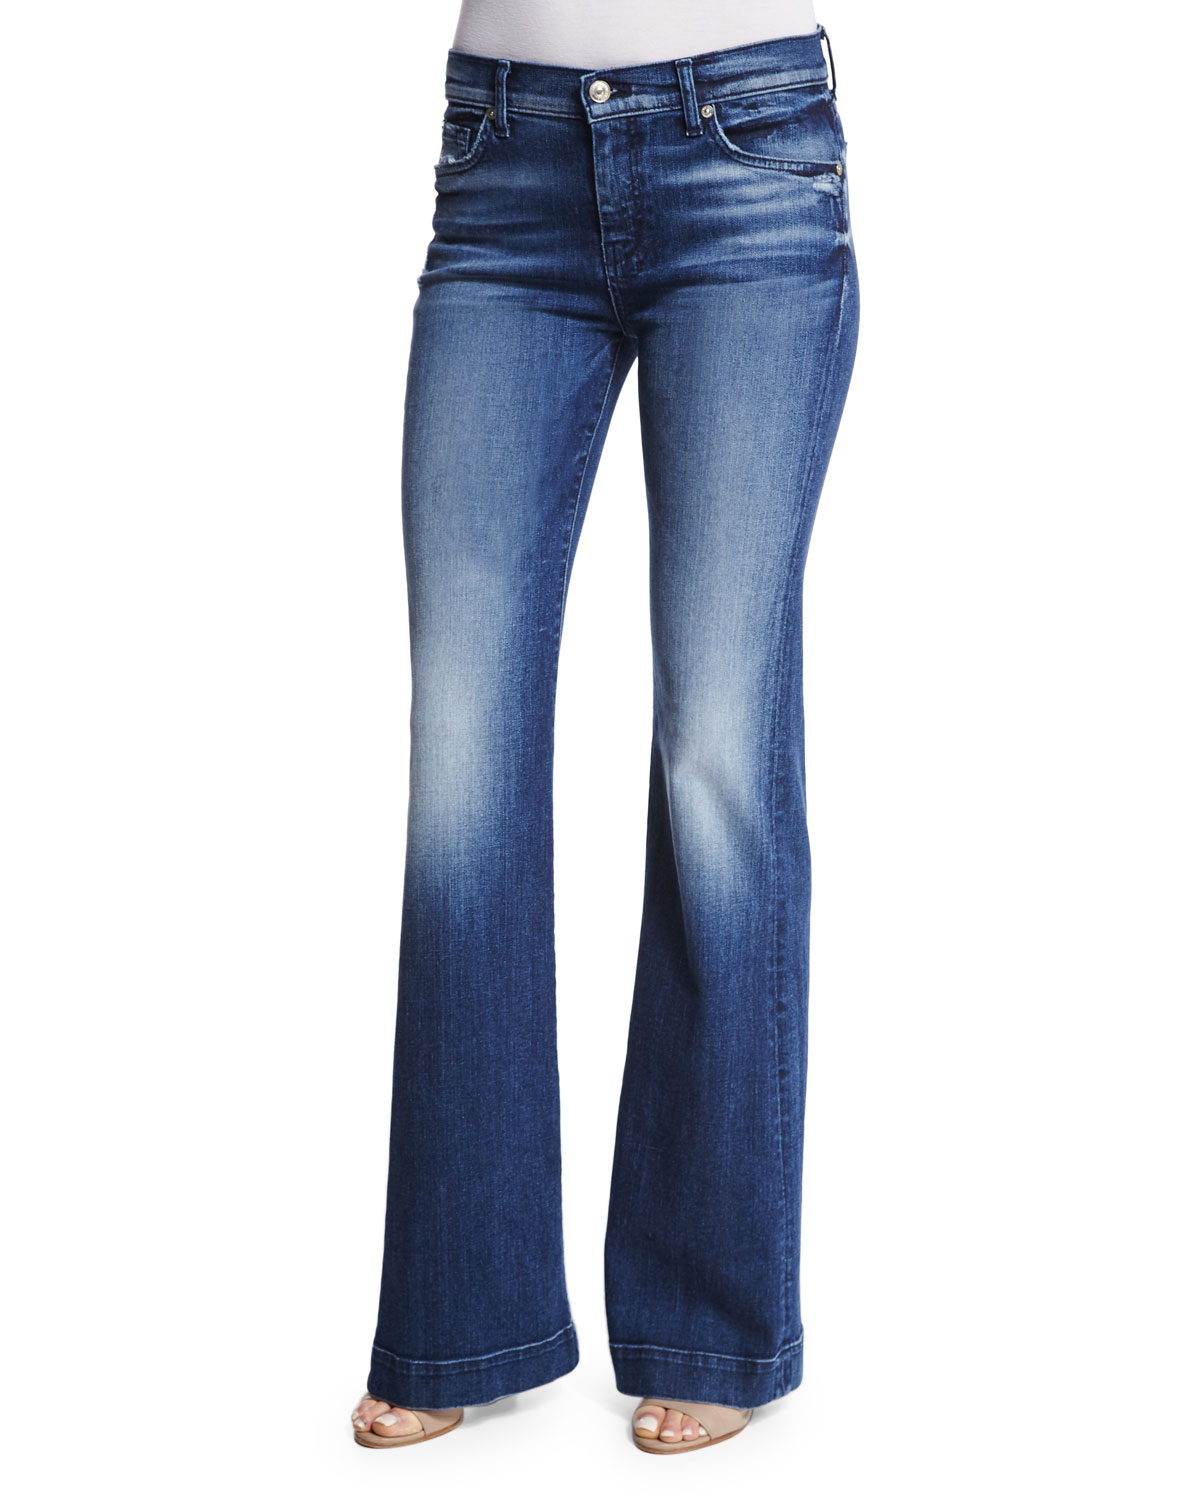 Tailorless Dojo Flare-Leg Jeans, Lake Blue, Size: 24, LAKE BLUE - 7 For All Mankind